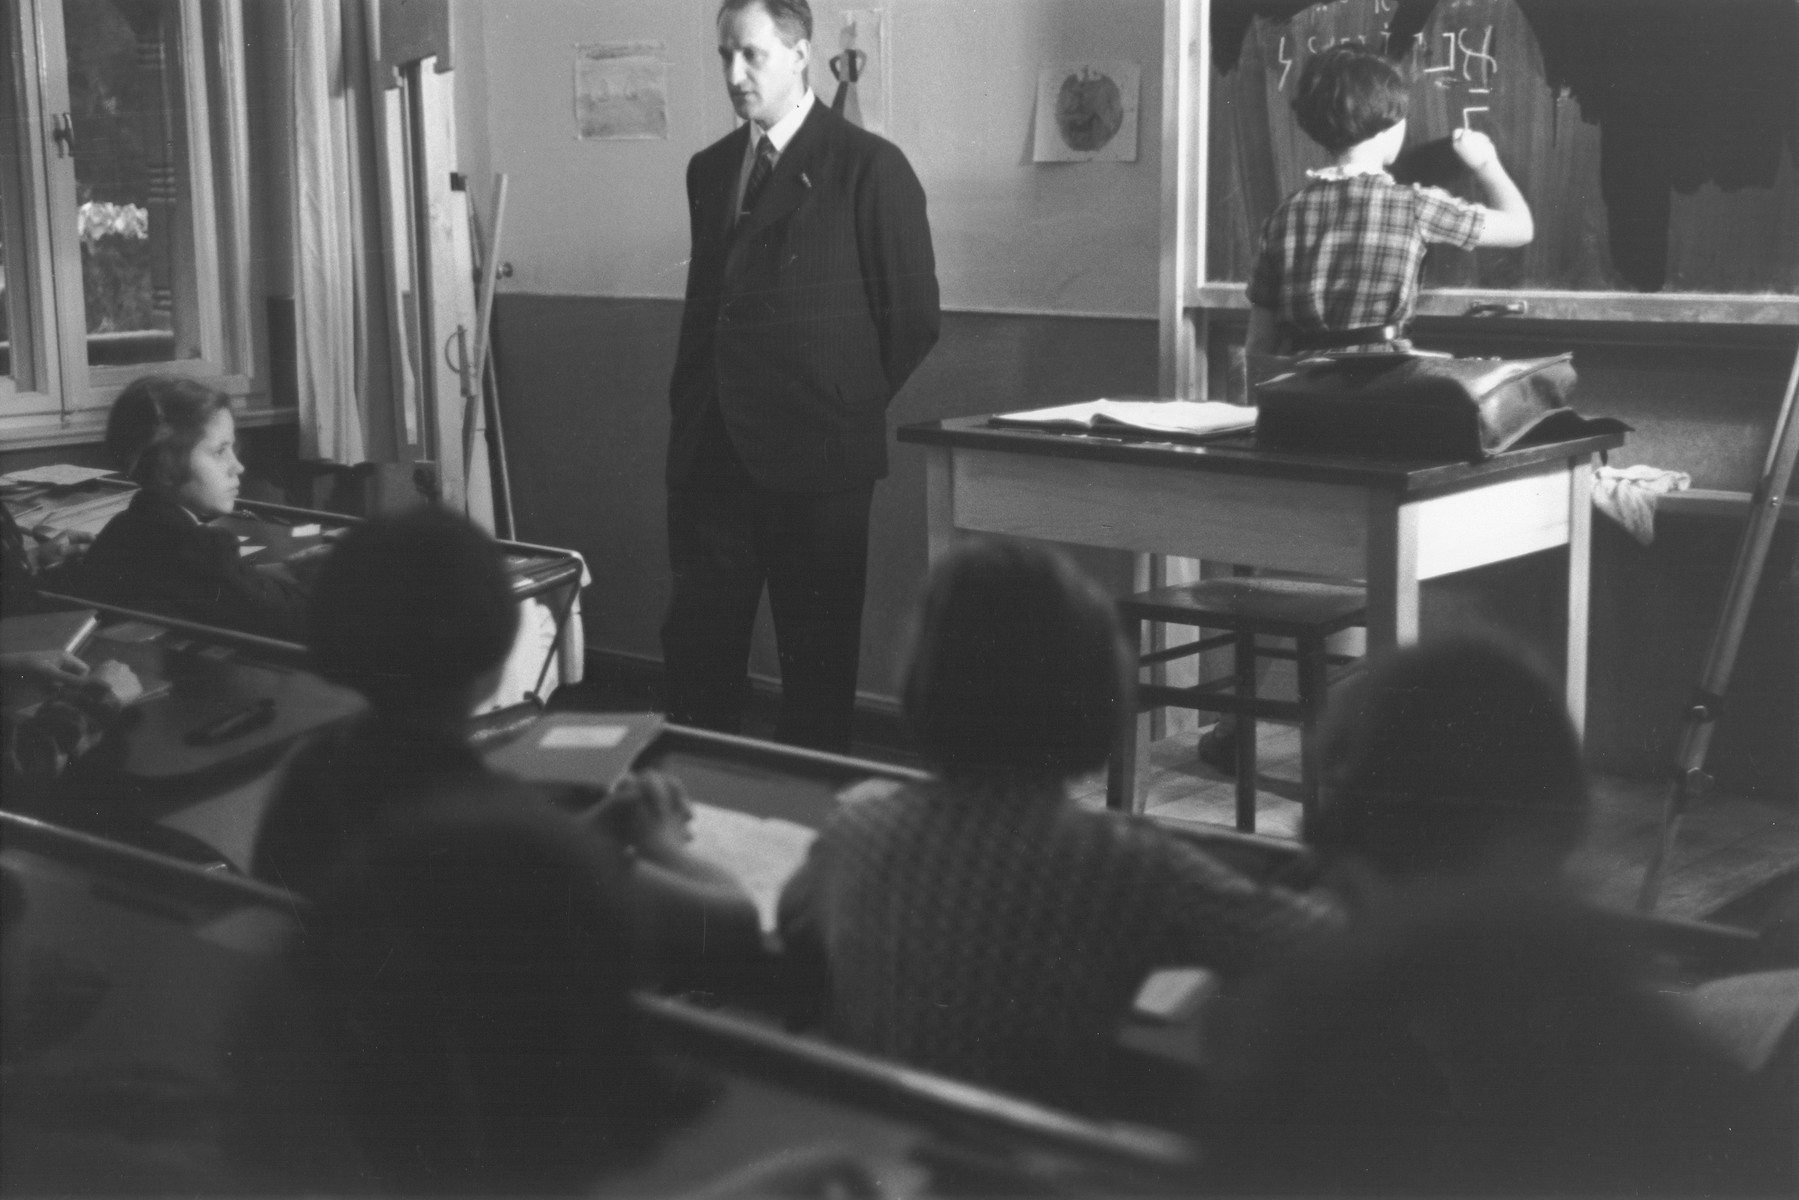 A Hebrew teacher at the Goldschmidt Jewish private school in Berlin-Grunewald instructs a class while one of his pupils conjugates a verb at the chalkboard.